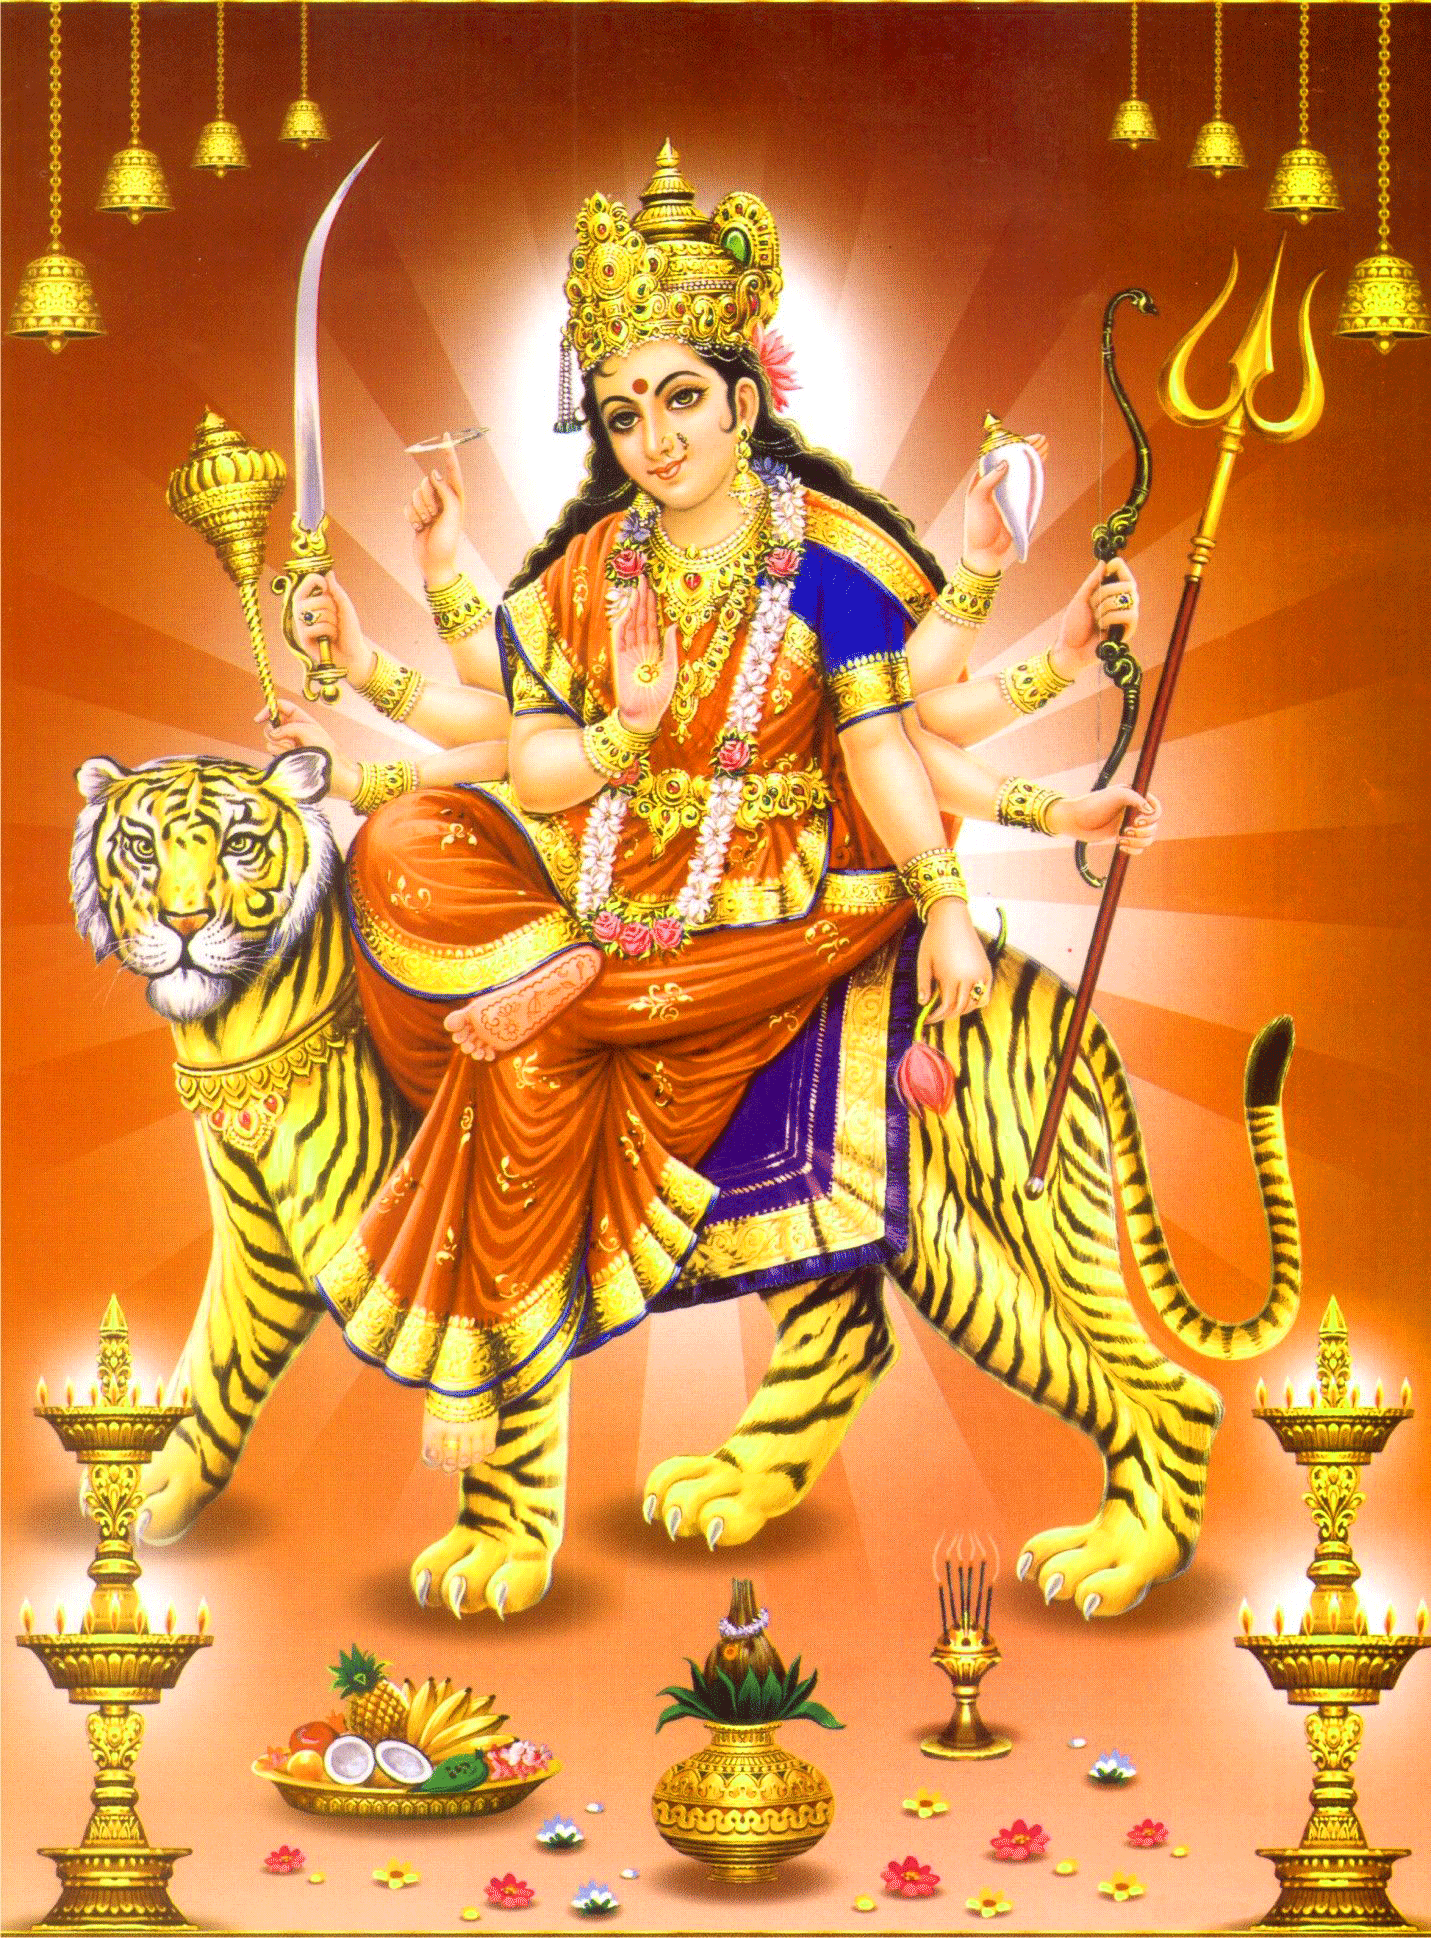 NAVRATRI IMAGES PICS PICTURES FREE DOWNLOAD